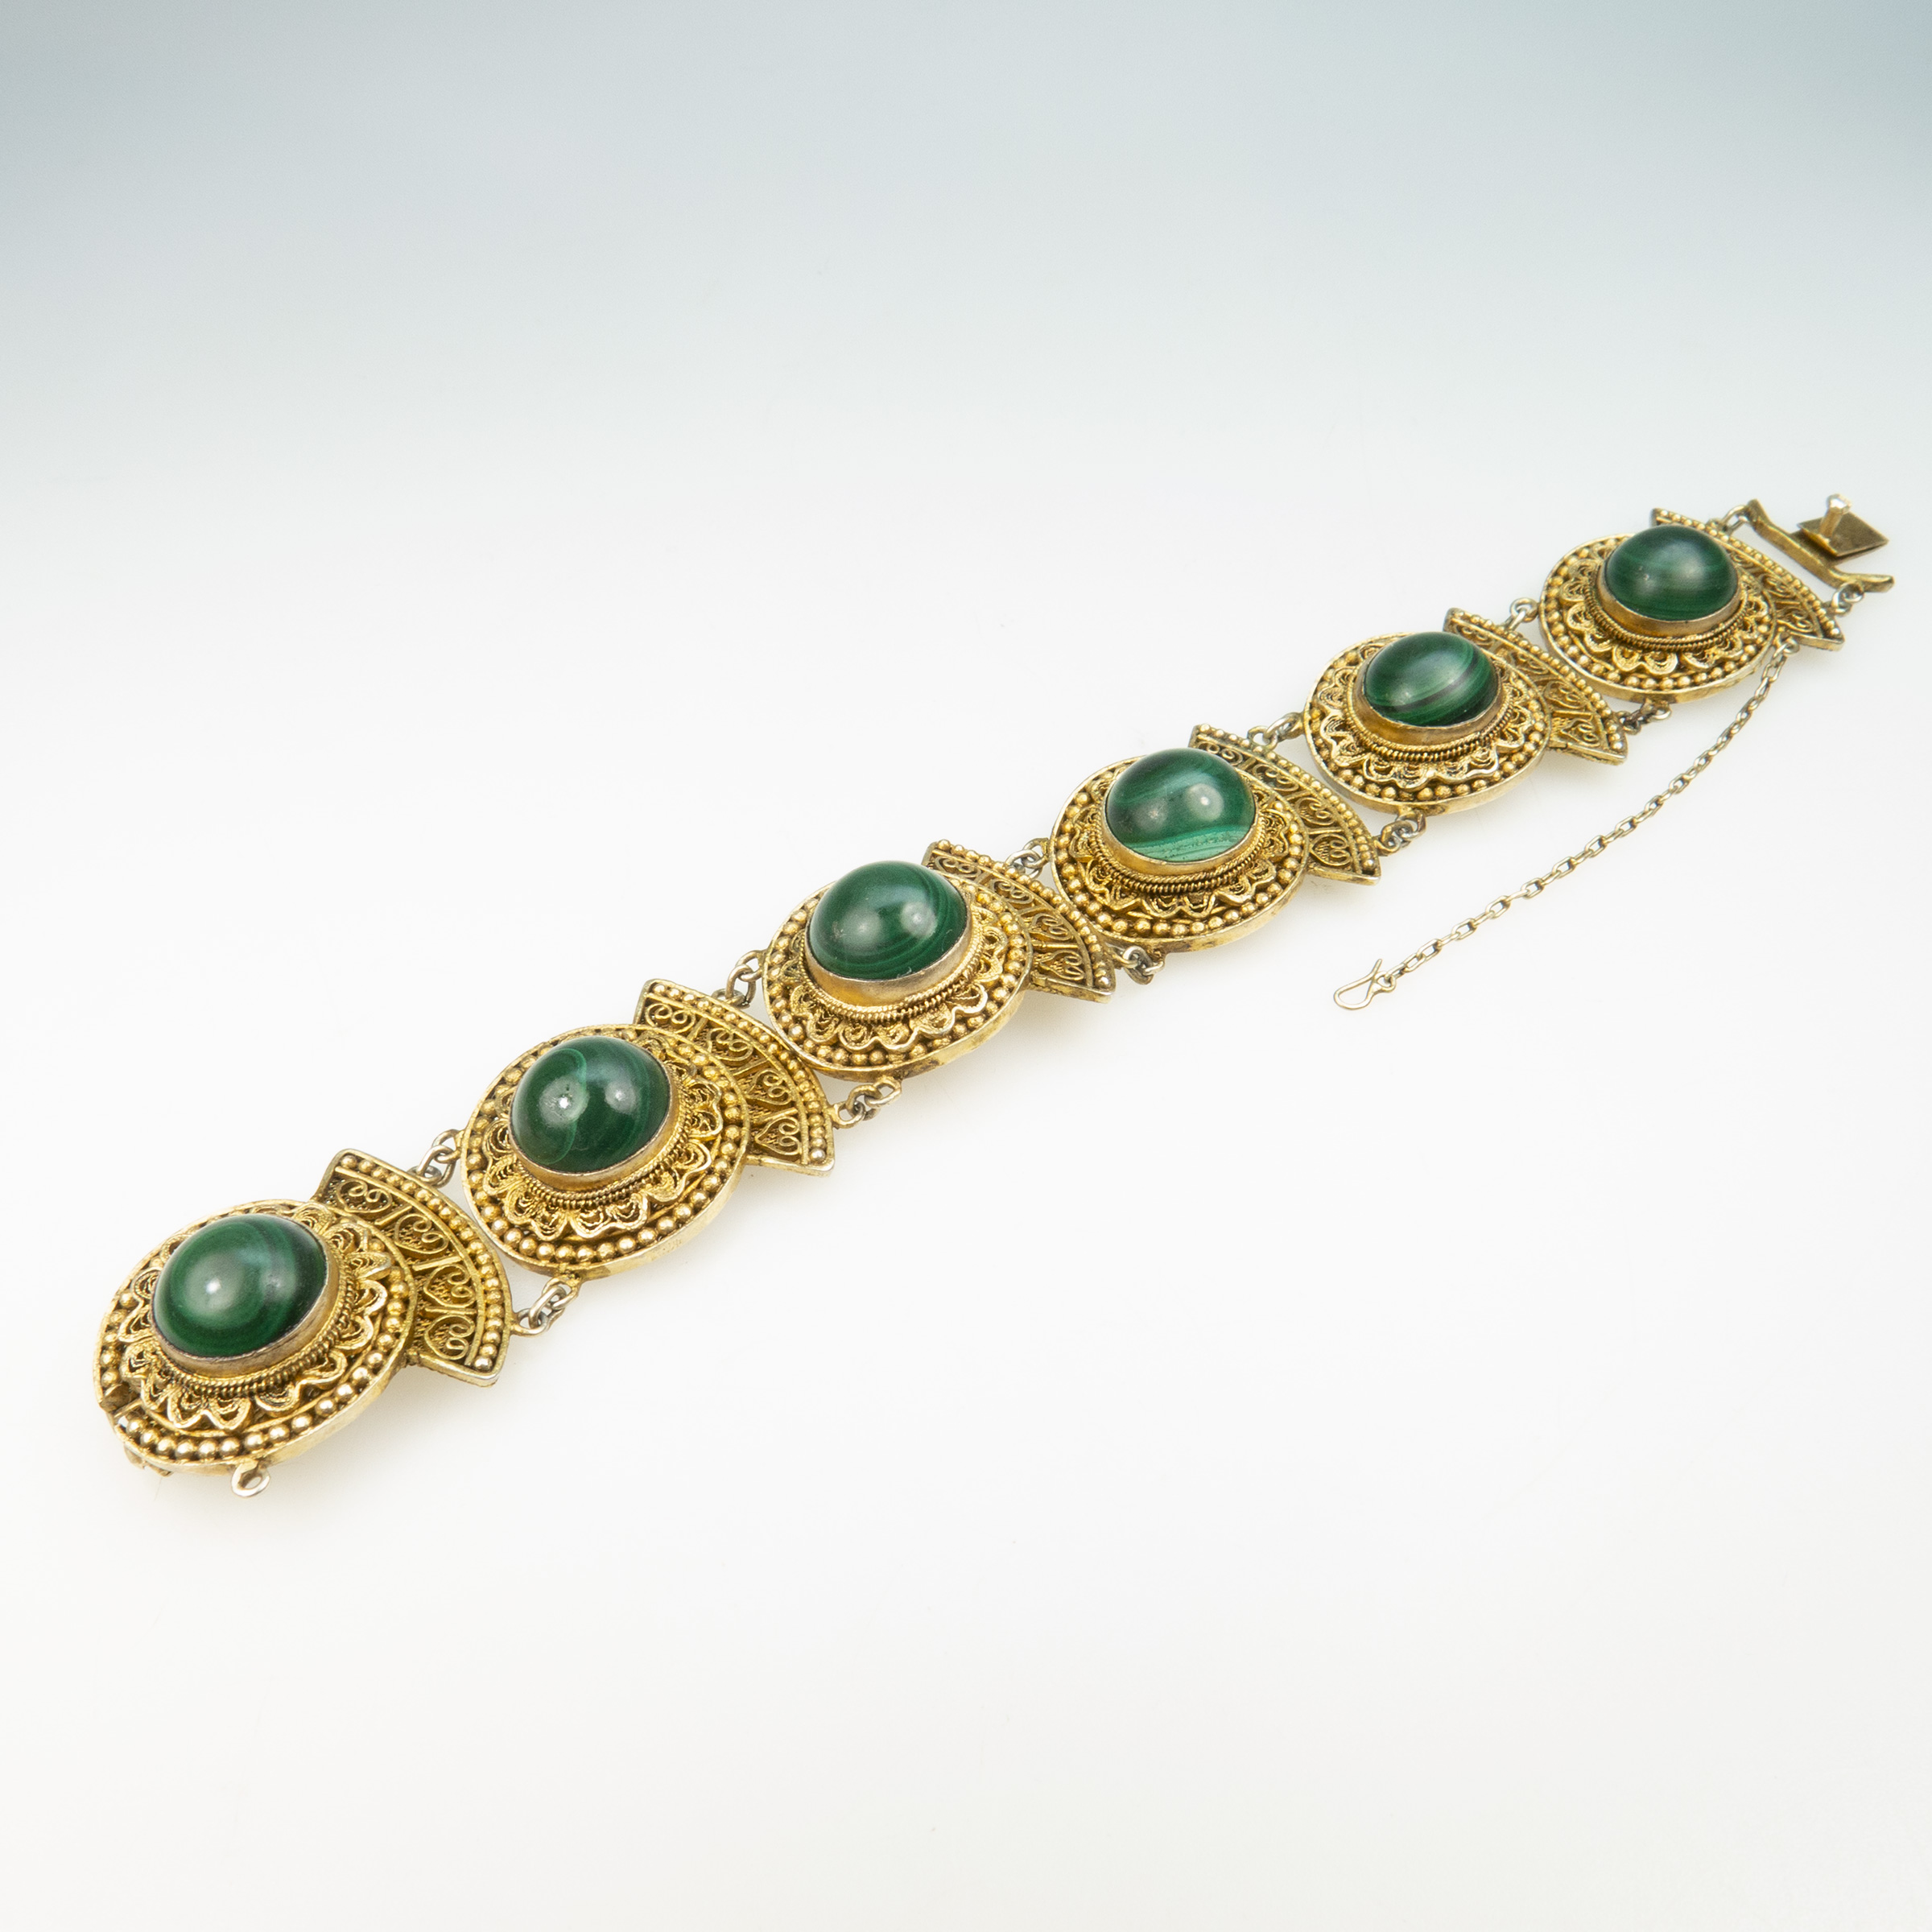 Chinese Silver Gilt Filigree Bracelet